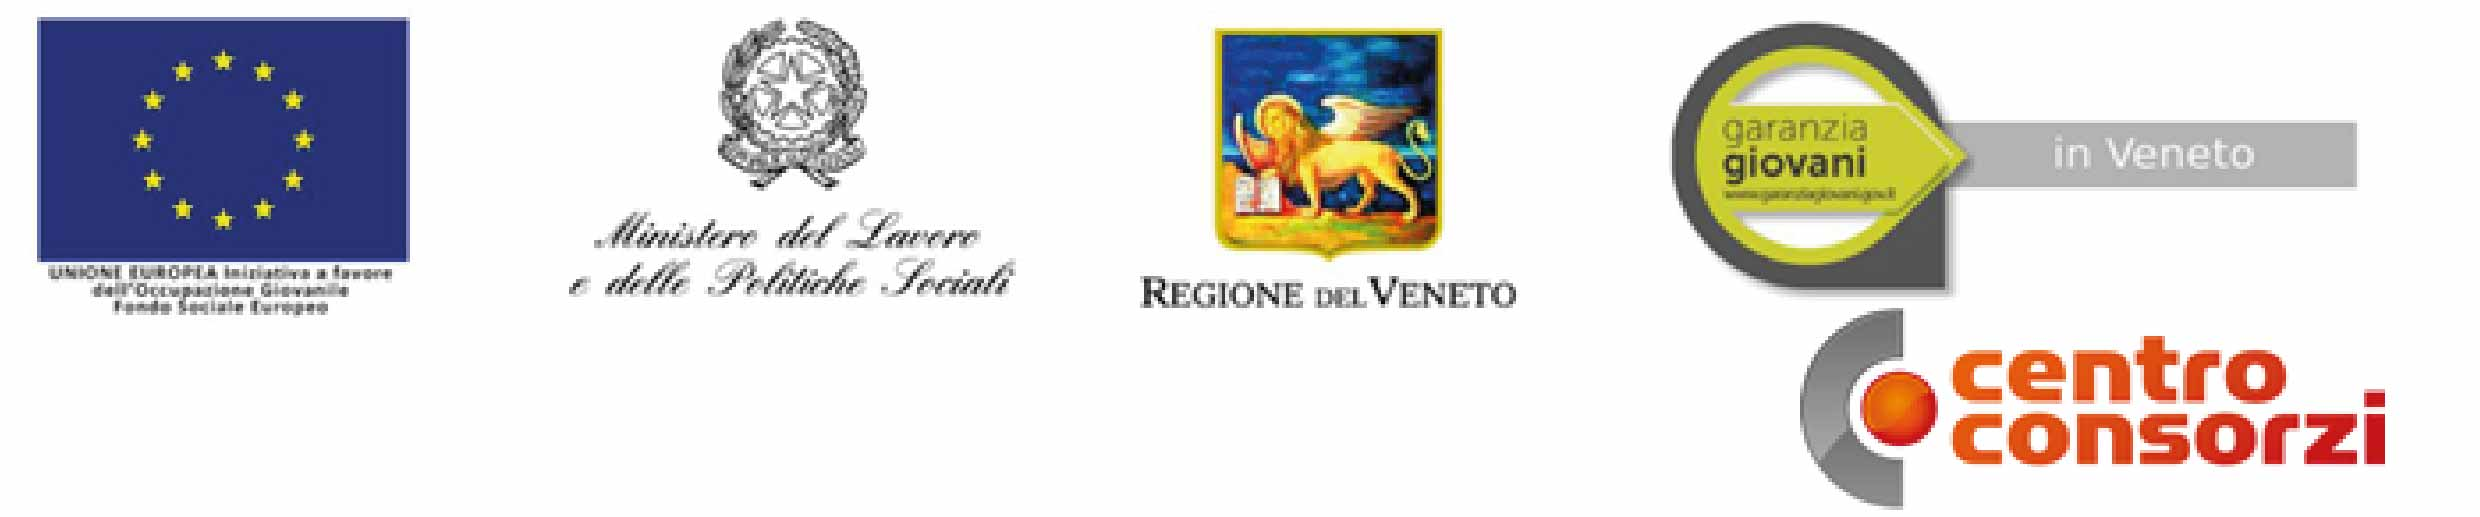 LOGHI REGIONE VENETO TALENT 01